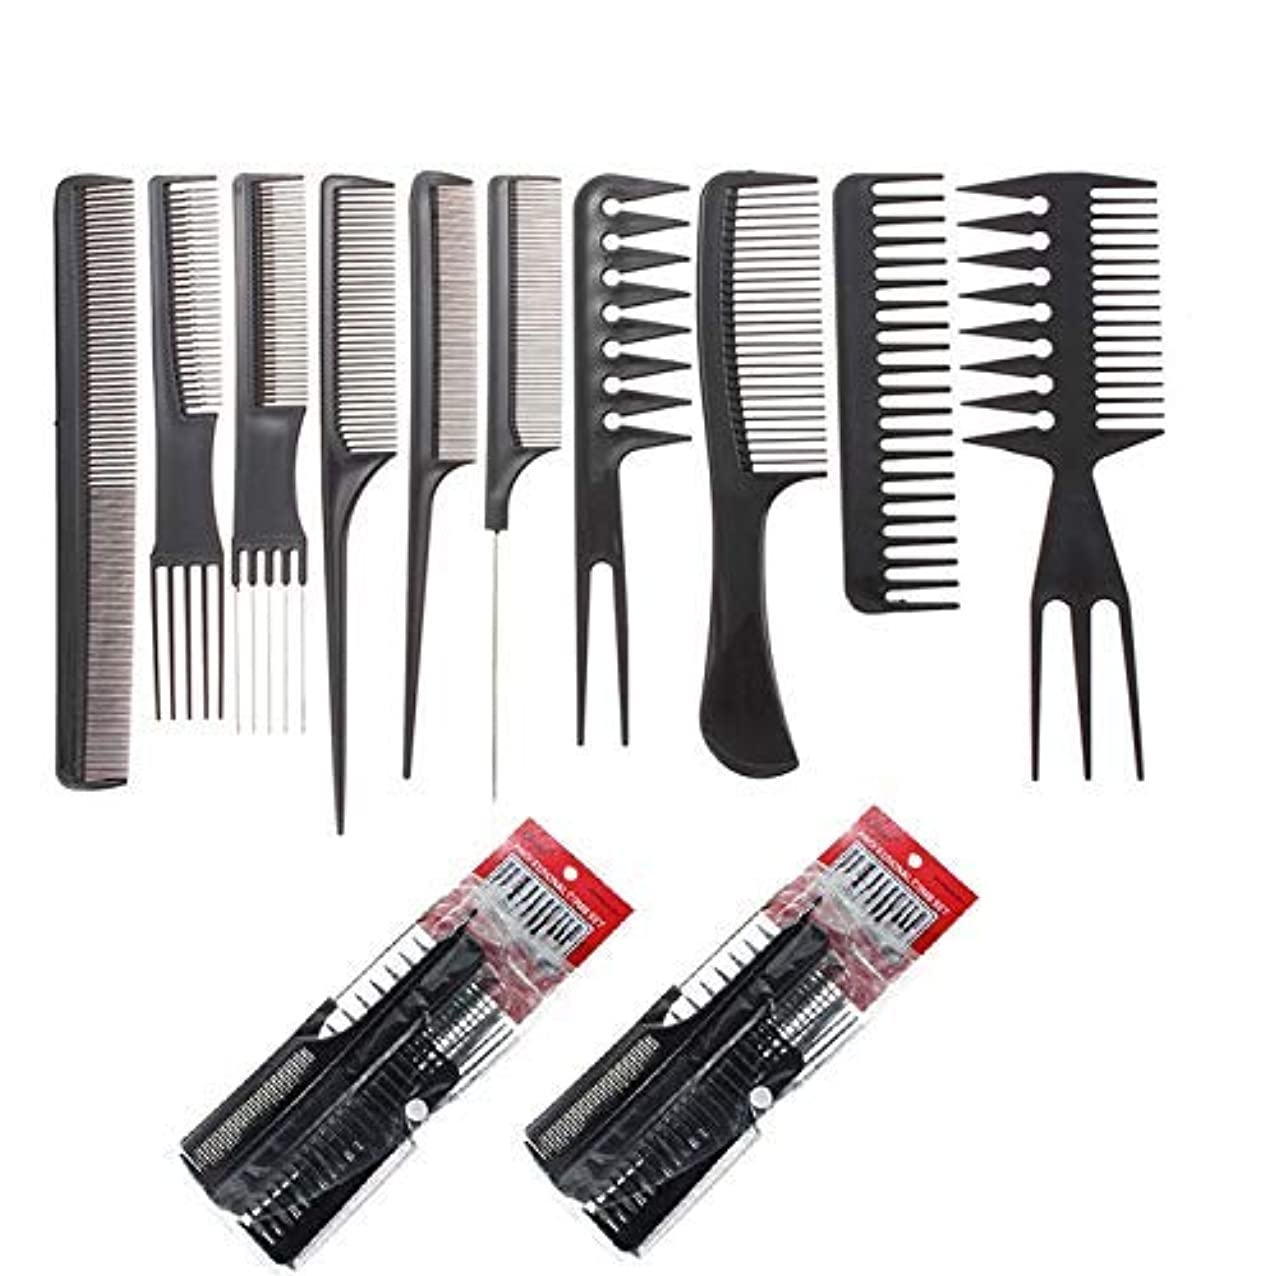 待って大いに蒸留するSBYURE 20pcs Professional Styling Comb Set,10pcs/Set,2 Set Salon Hairdressing Combs Hair Care Styling Tools Hair...